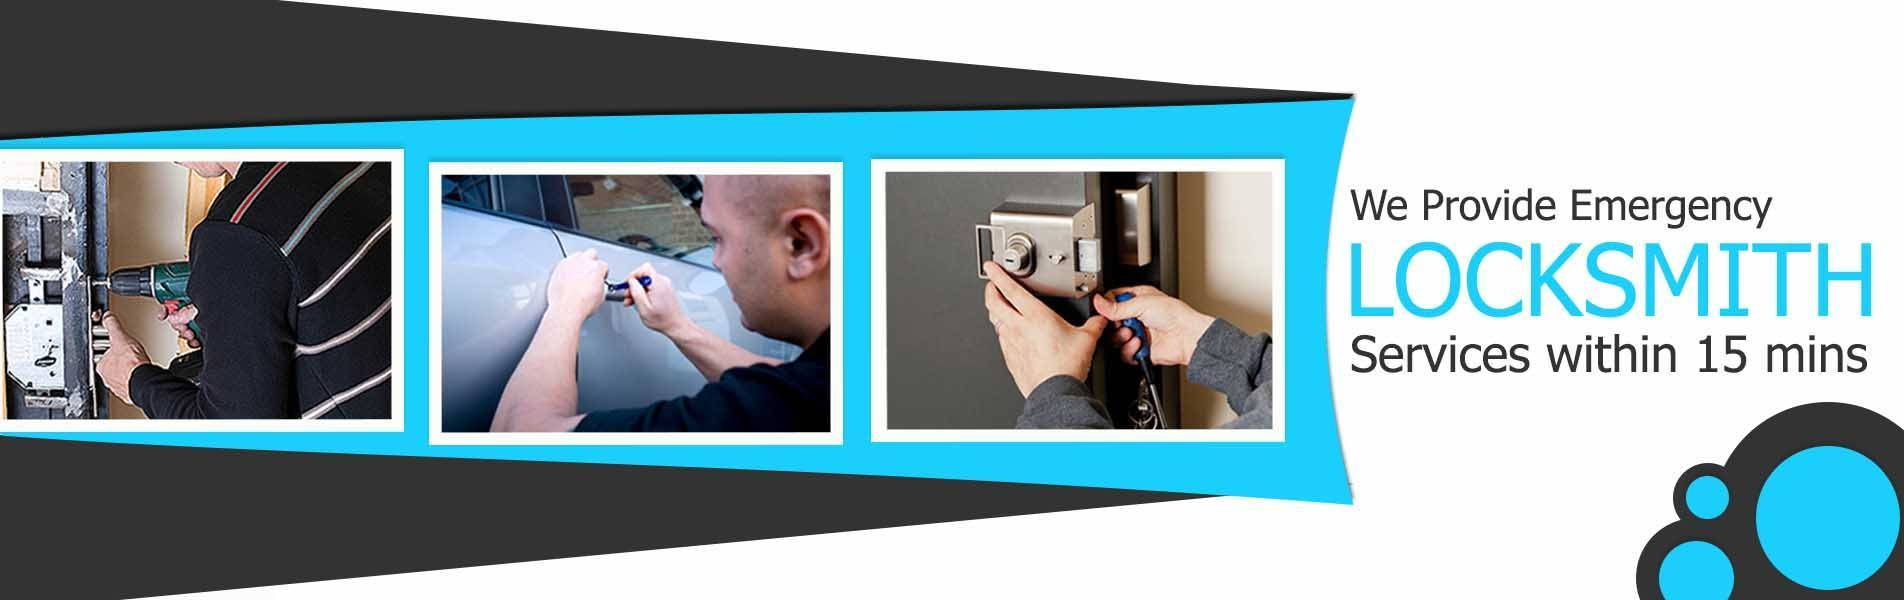 Chicago City Locksmith, Chicago, IL 312-525-2033